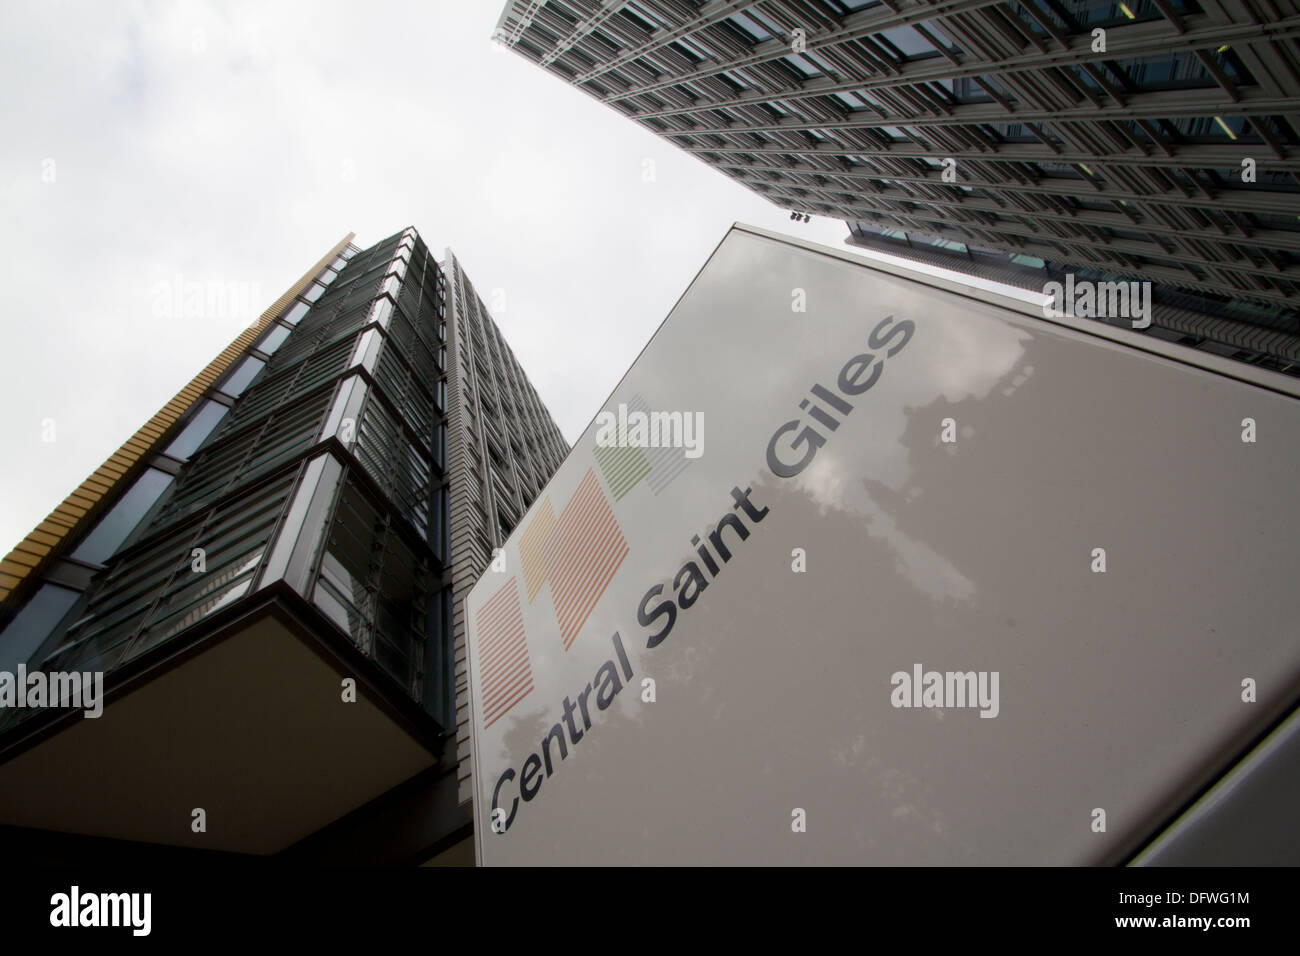 Central Saint Giles college London - Stock Image